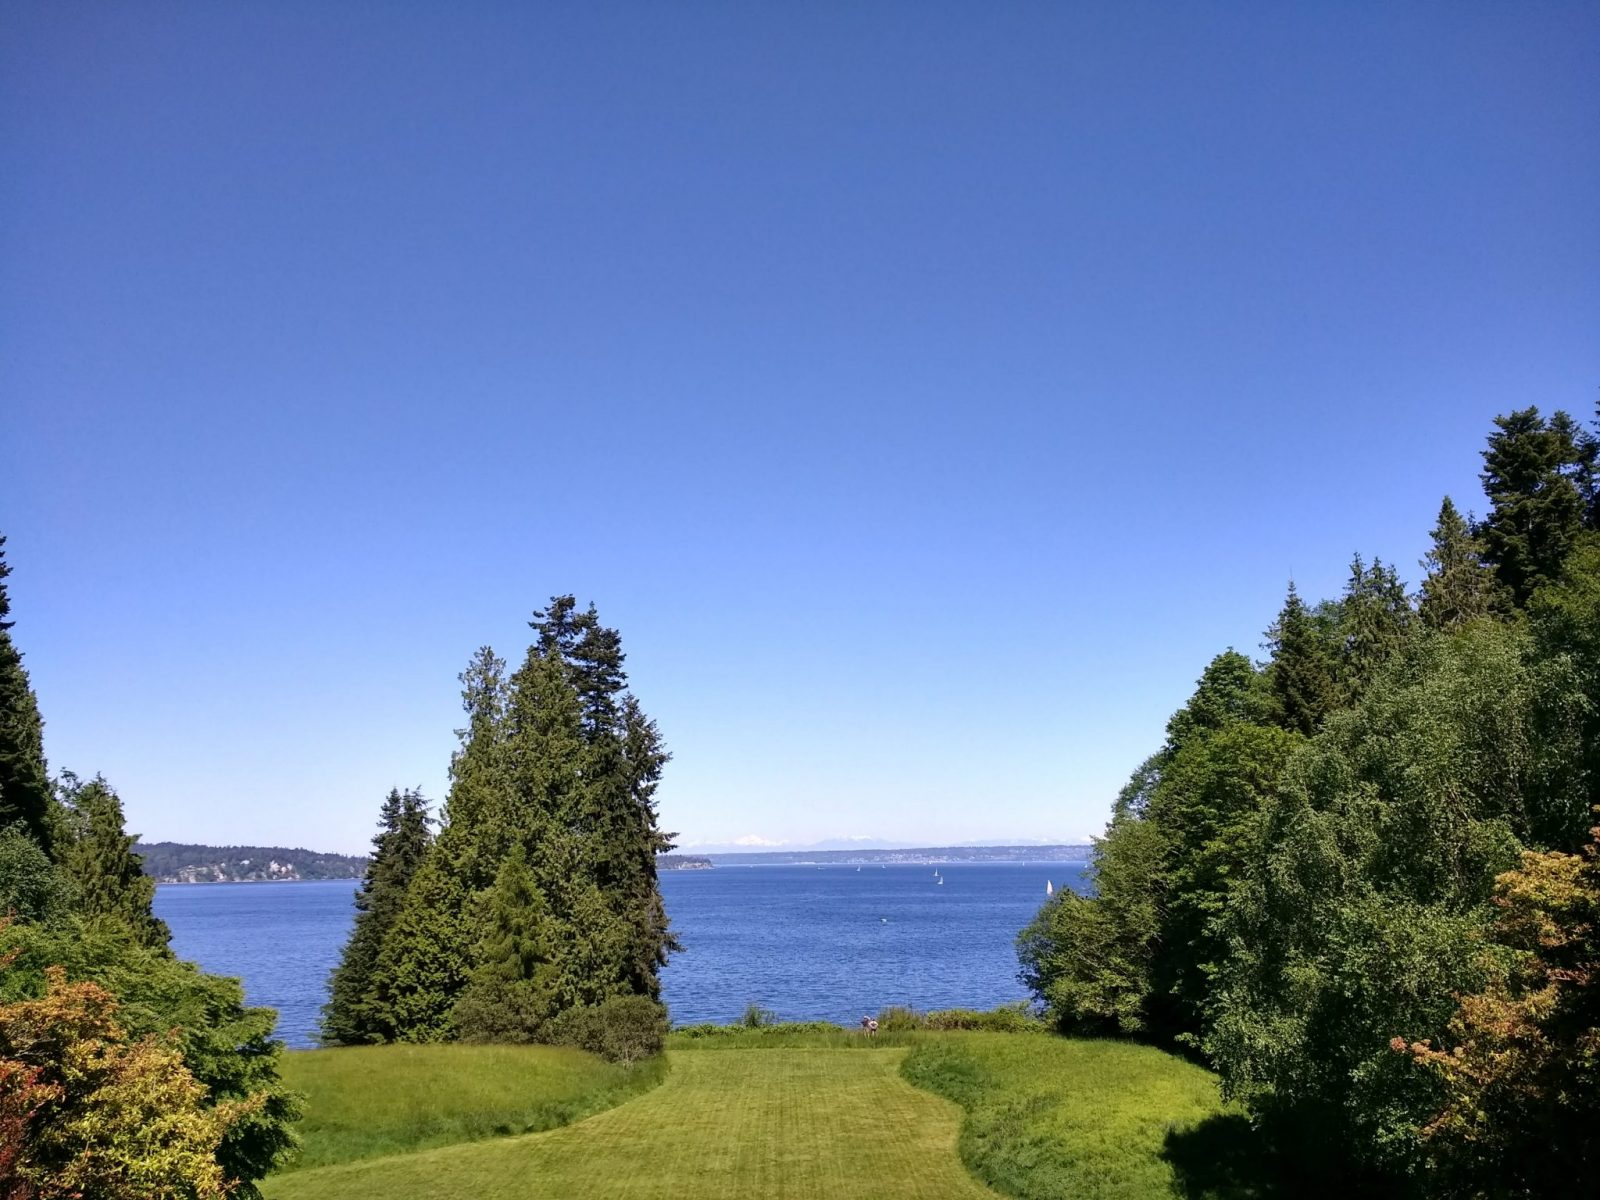 Blue skies and blue water in the distance framed by green grass and evergreen trees in Bloedel Reserve on Bainbridge Island